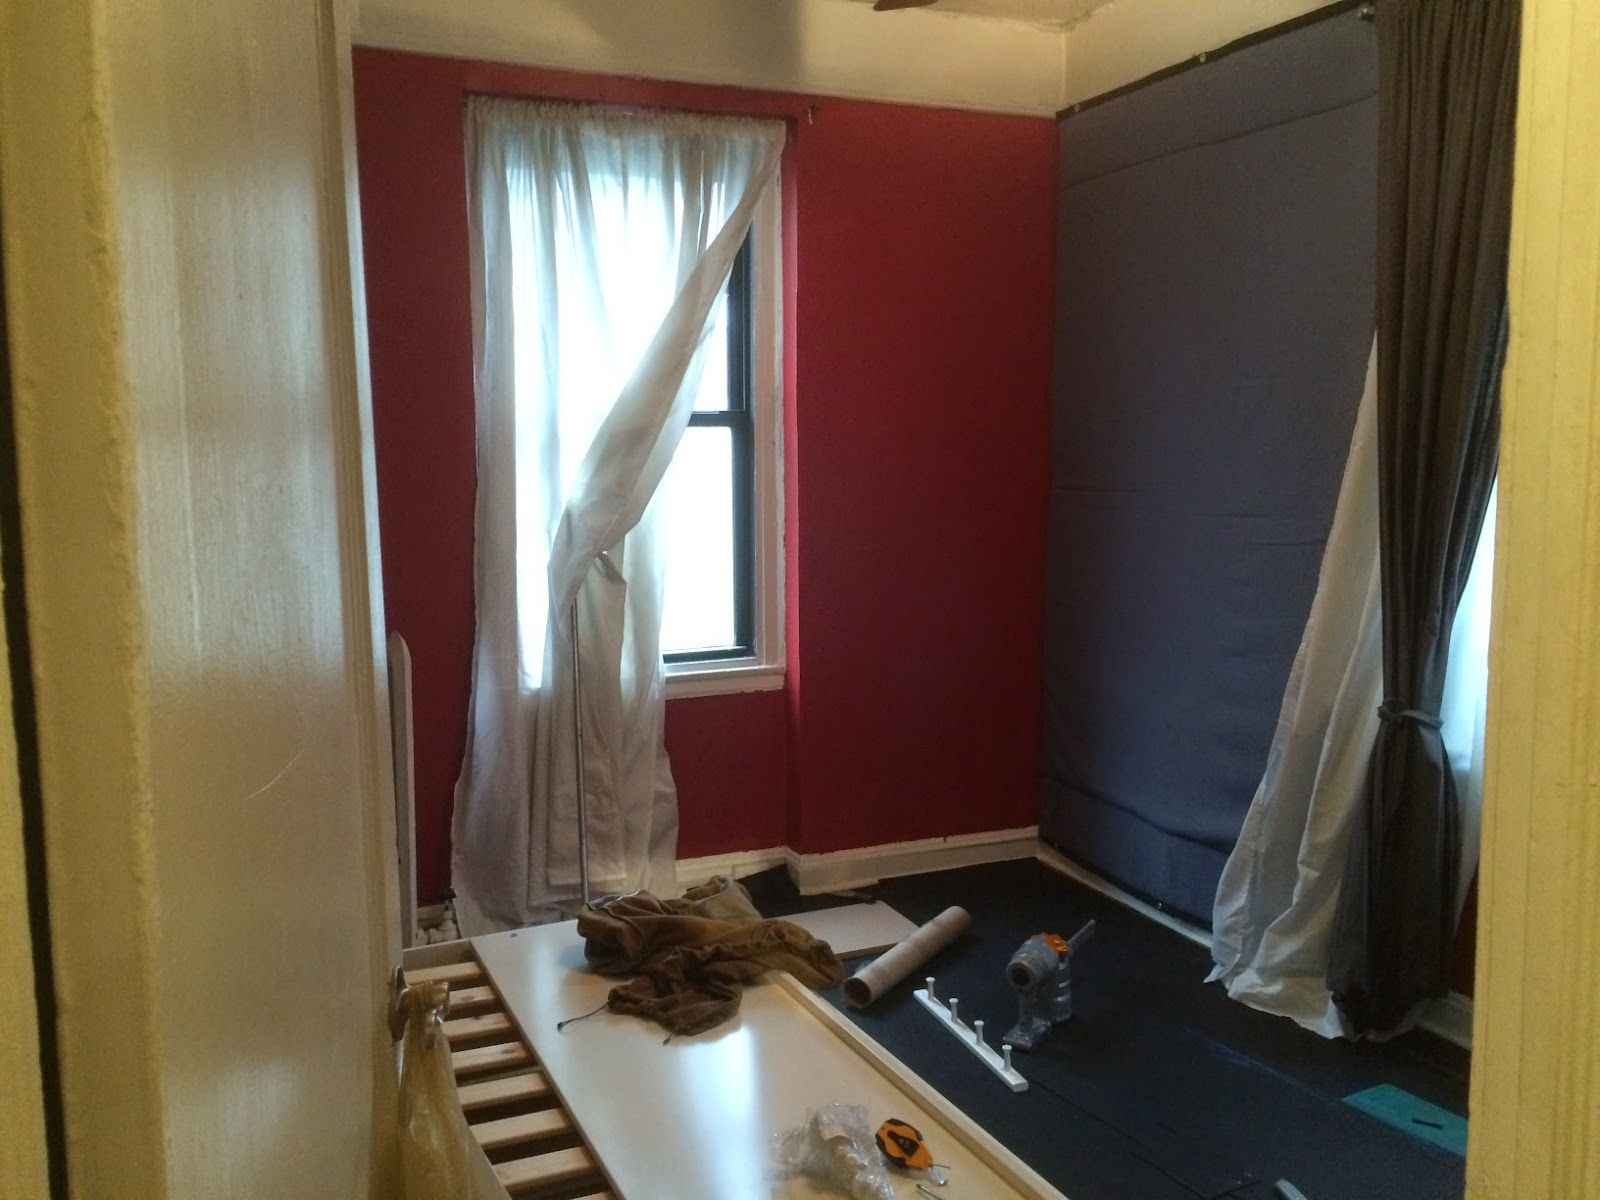 Awesome Soundproofing My Apartment Images - Liltigertoo.com ...